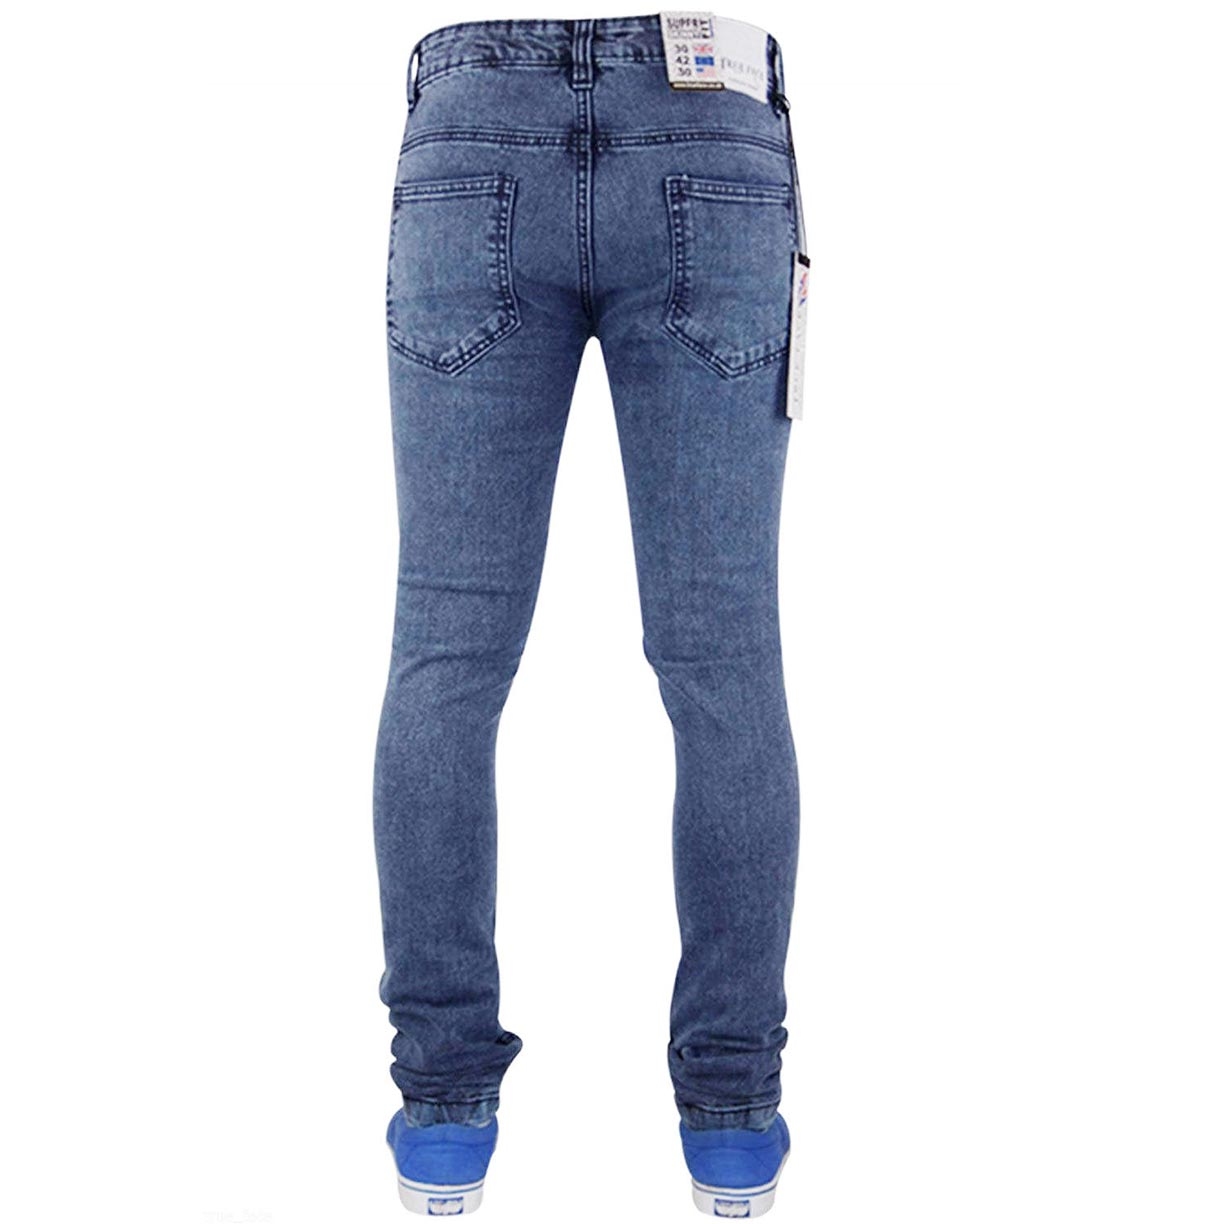 True Face Skinny Jeans TF021 Blue